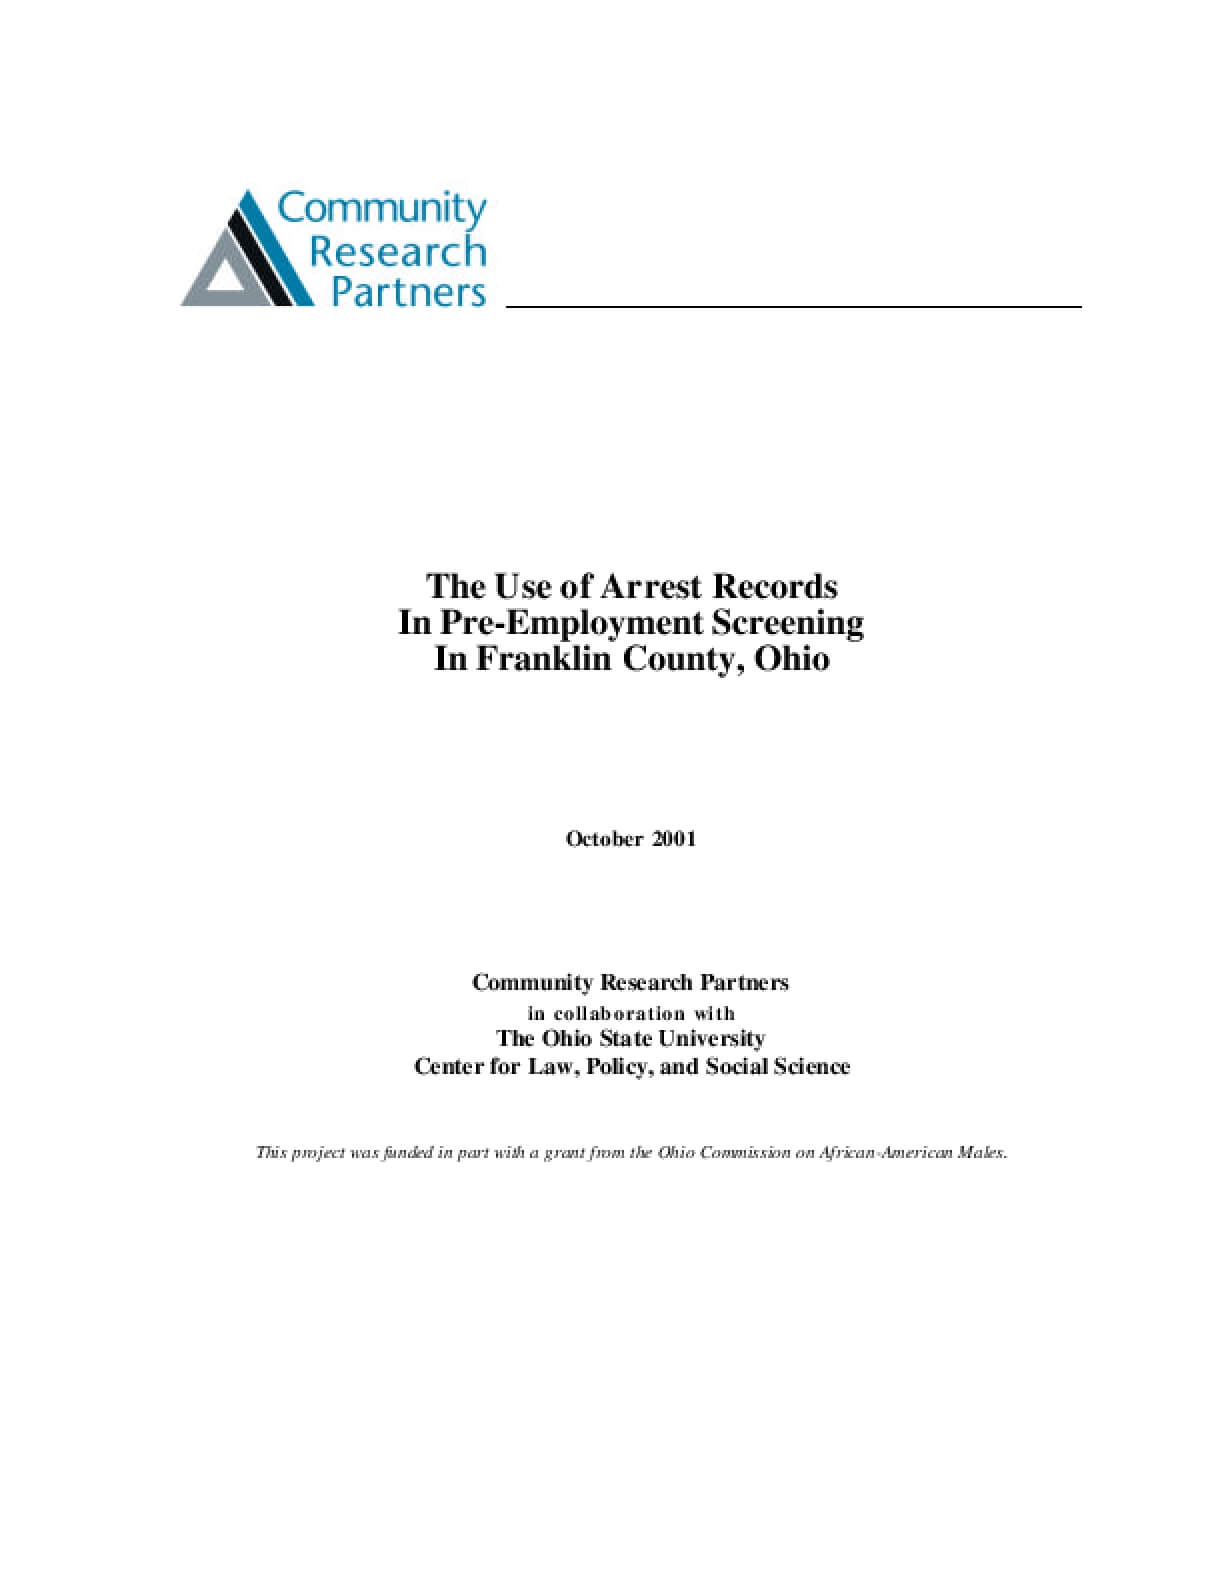 The Use of Arrest Records In Pre-Employment Screening In Franklin County, Ohio